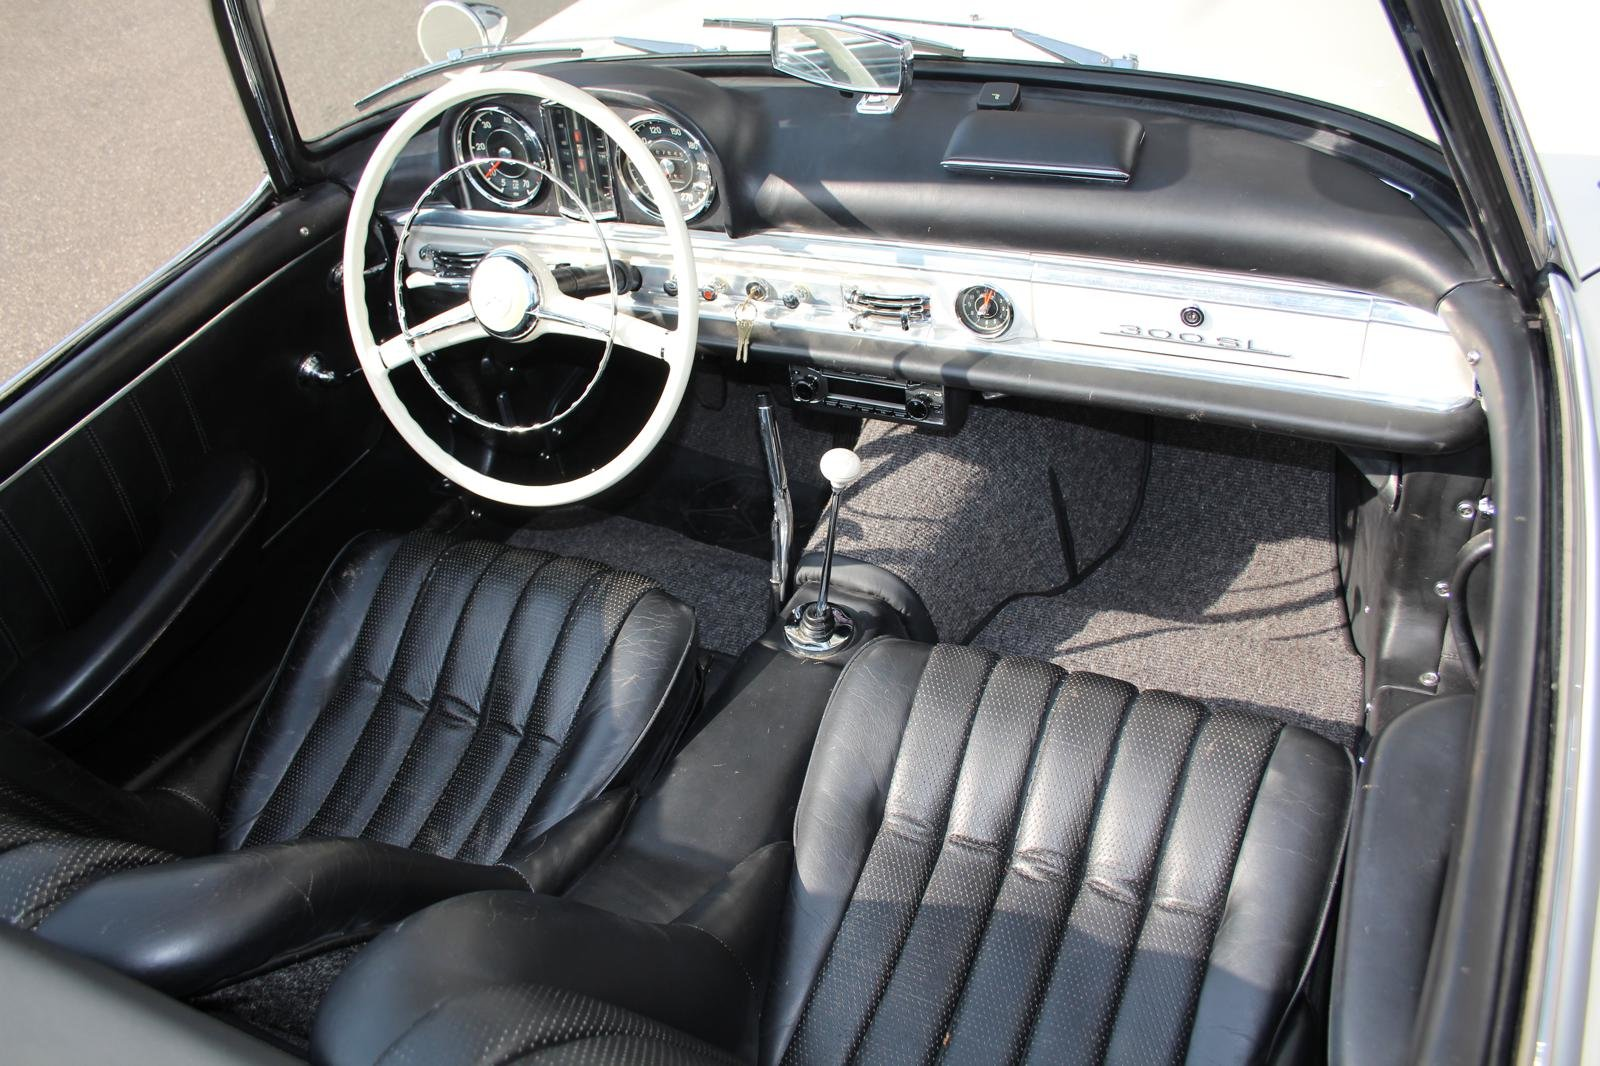 1957 Mercedes-Benz 300 SL Roadster LHD For Sale (picture 3 of 12)